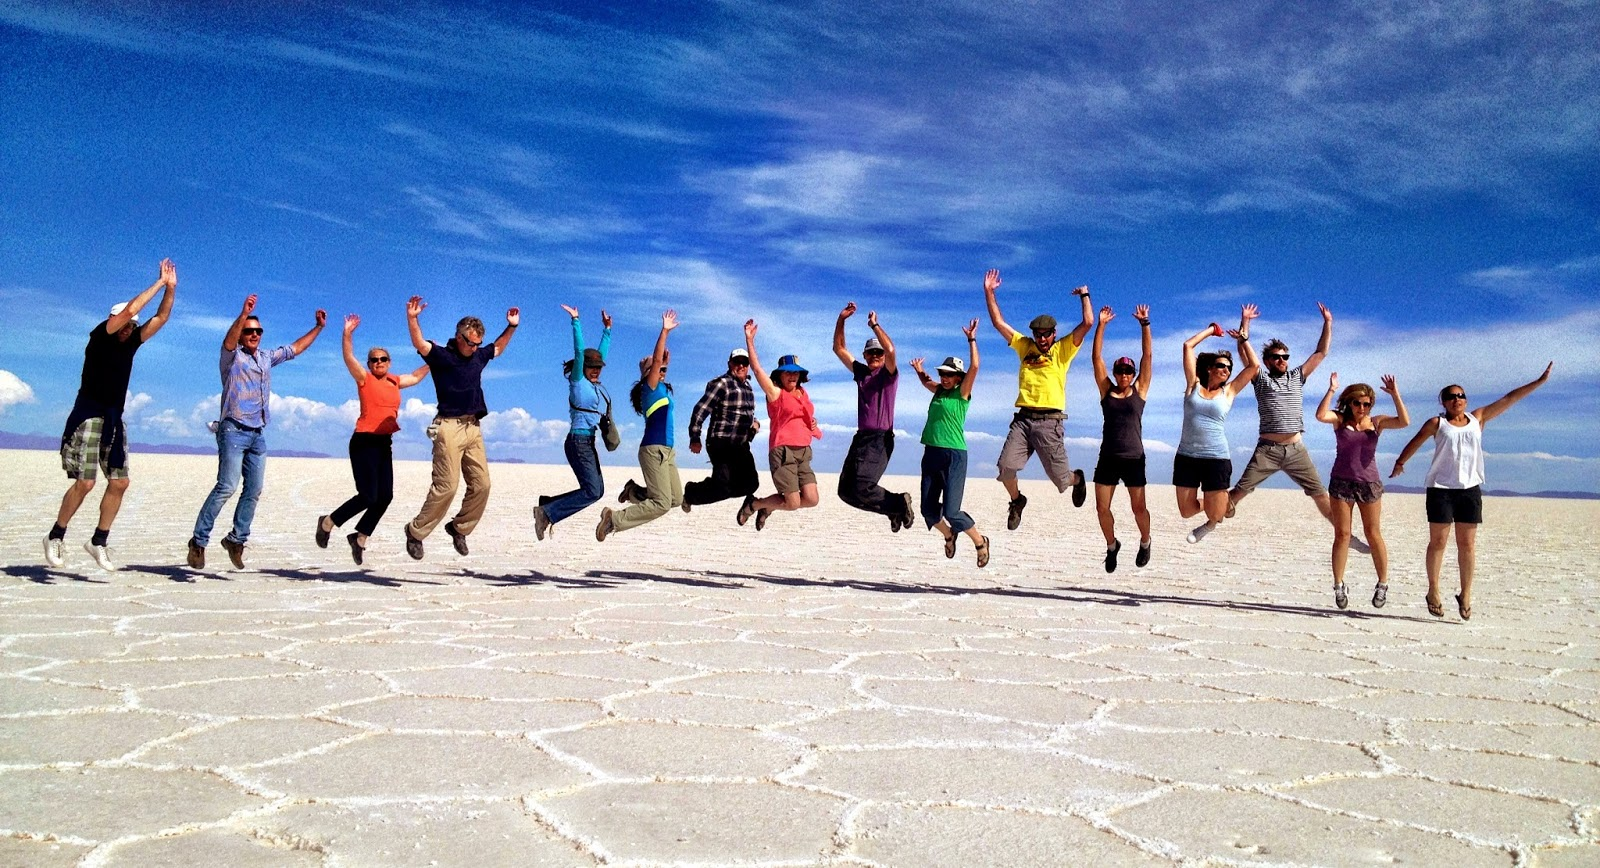 Group pic in the Salar de Uyuni, Bolivia